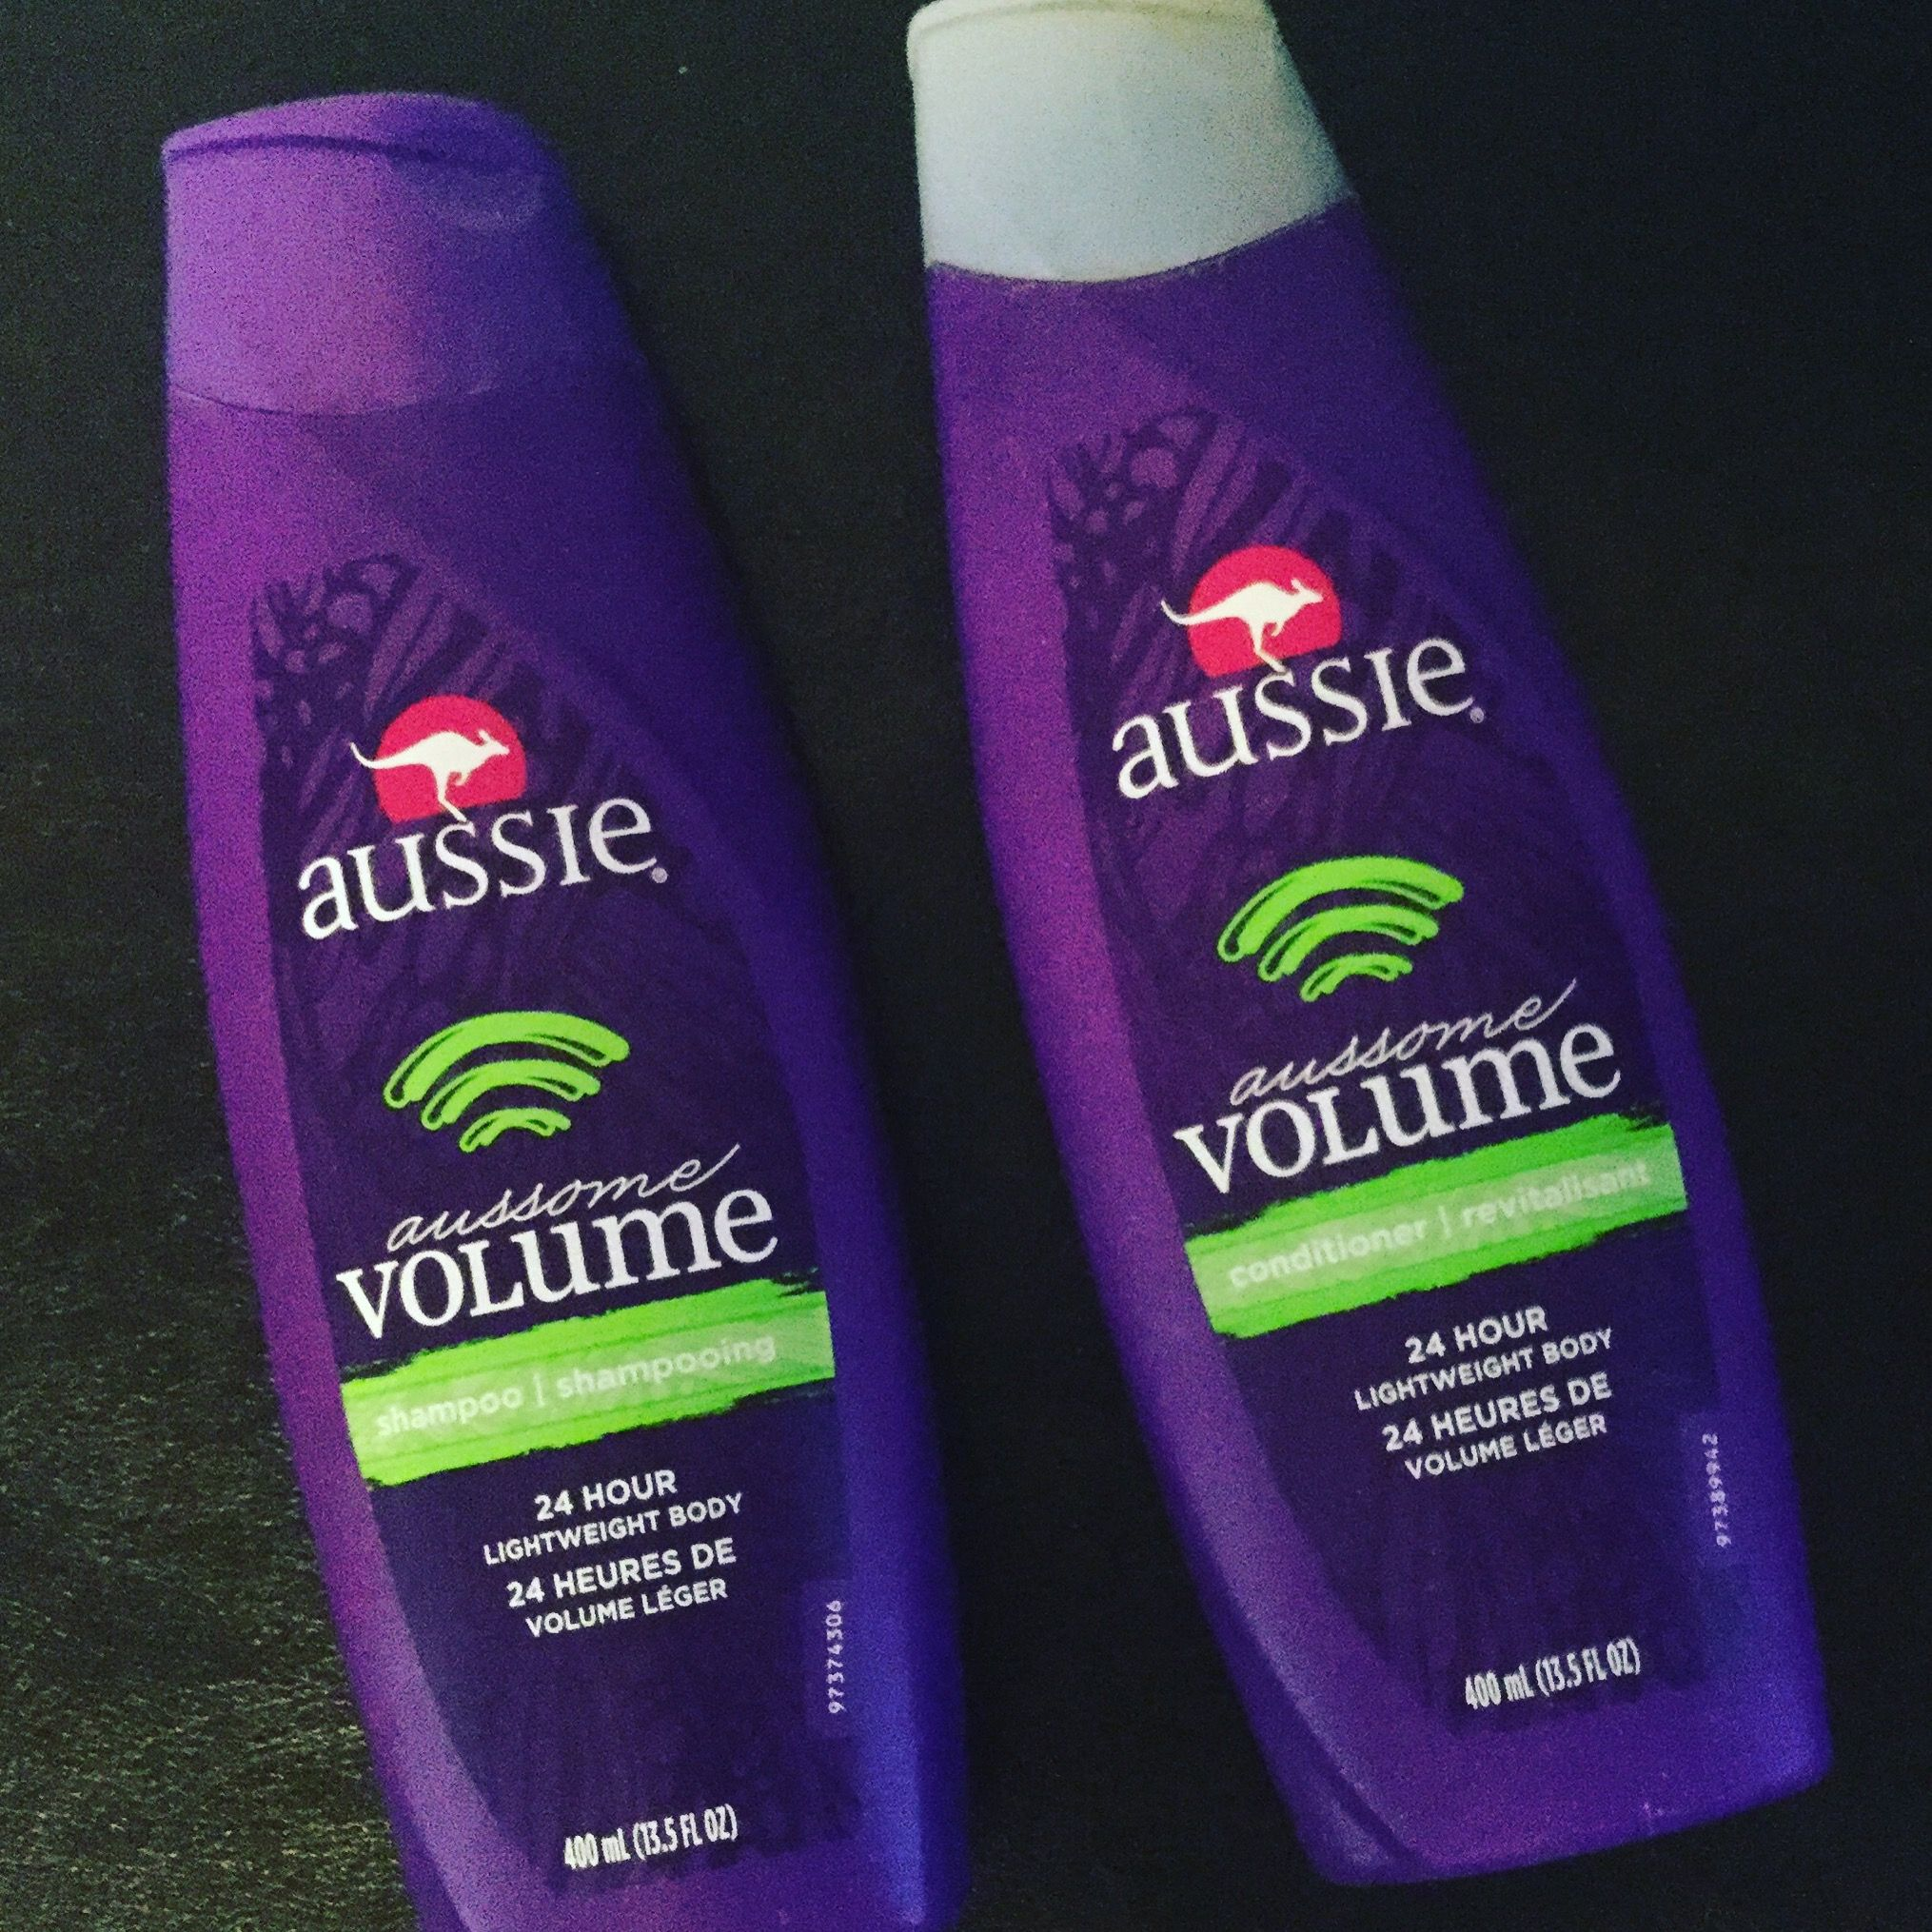 71c226e0b5 Aussie aussome Volume shampoo   conditioner. One of my favorite drugstore  products. It s affordable and smells amazing. Gives you great volume all  day.